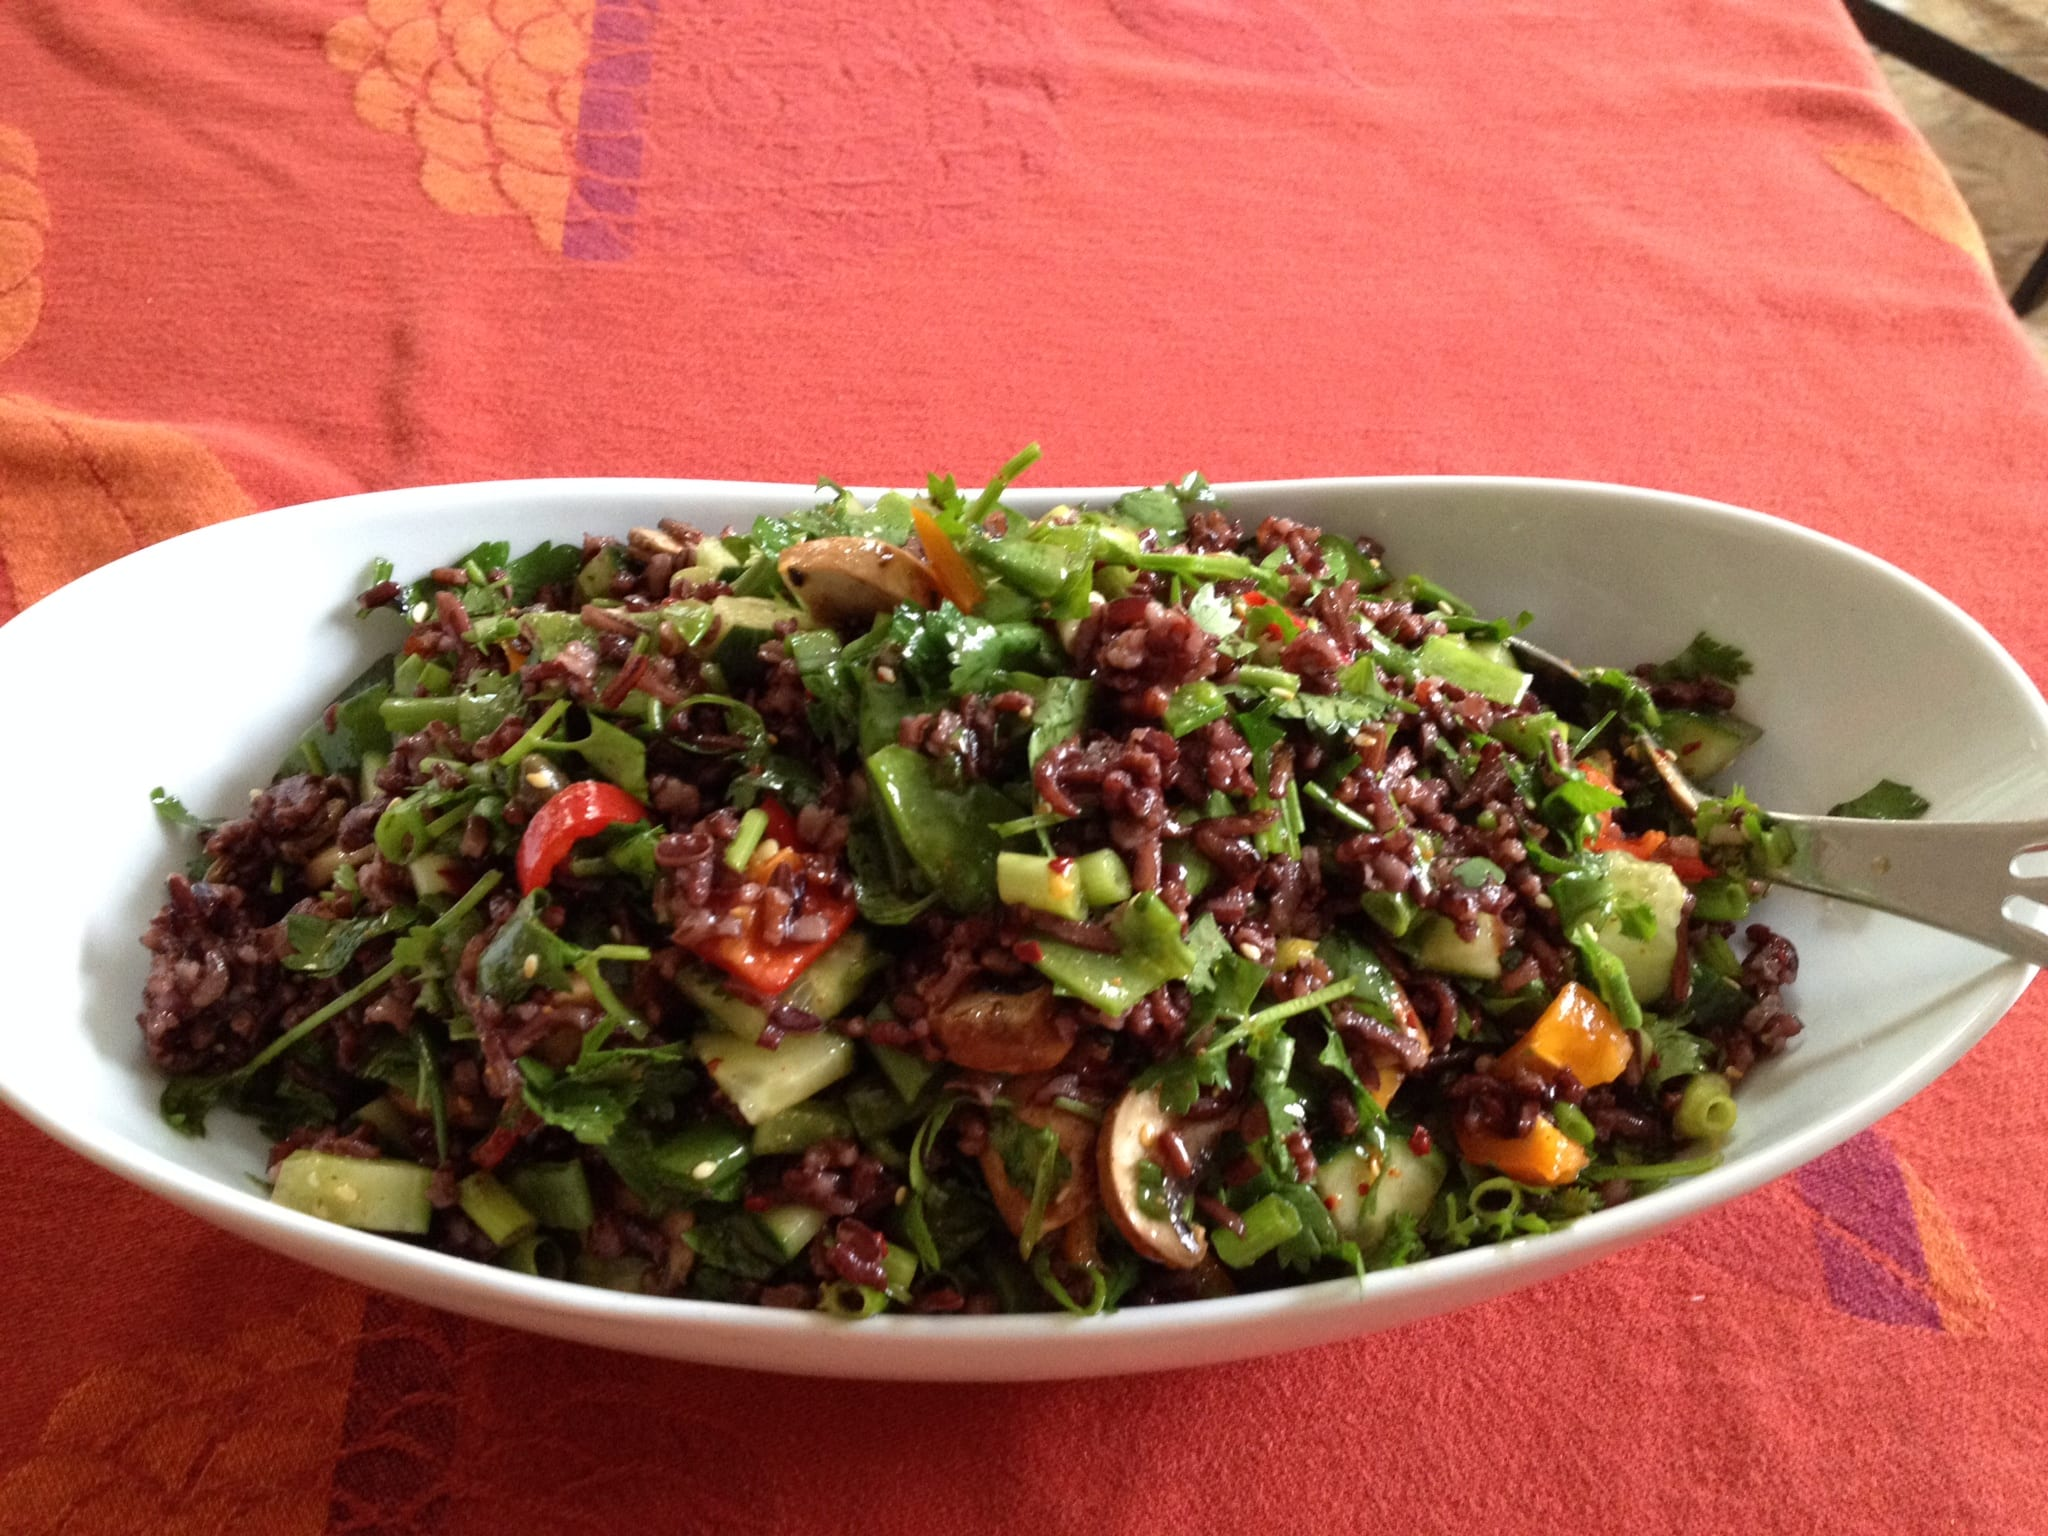 Japonica Wild Rice Salad with Mushrooms and Capers